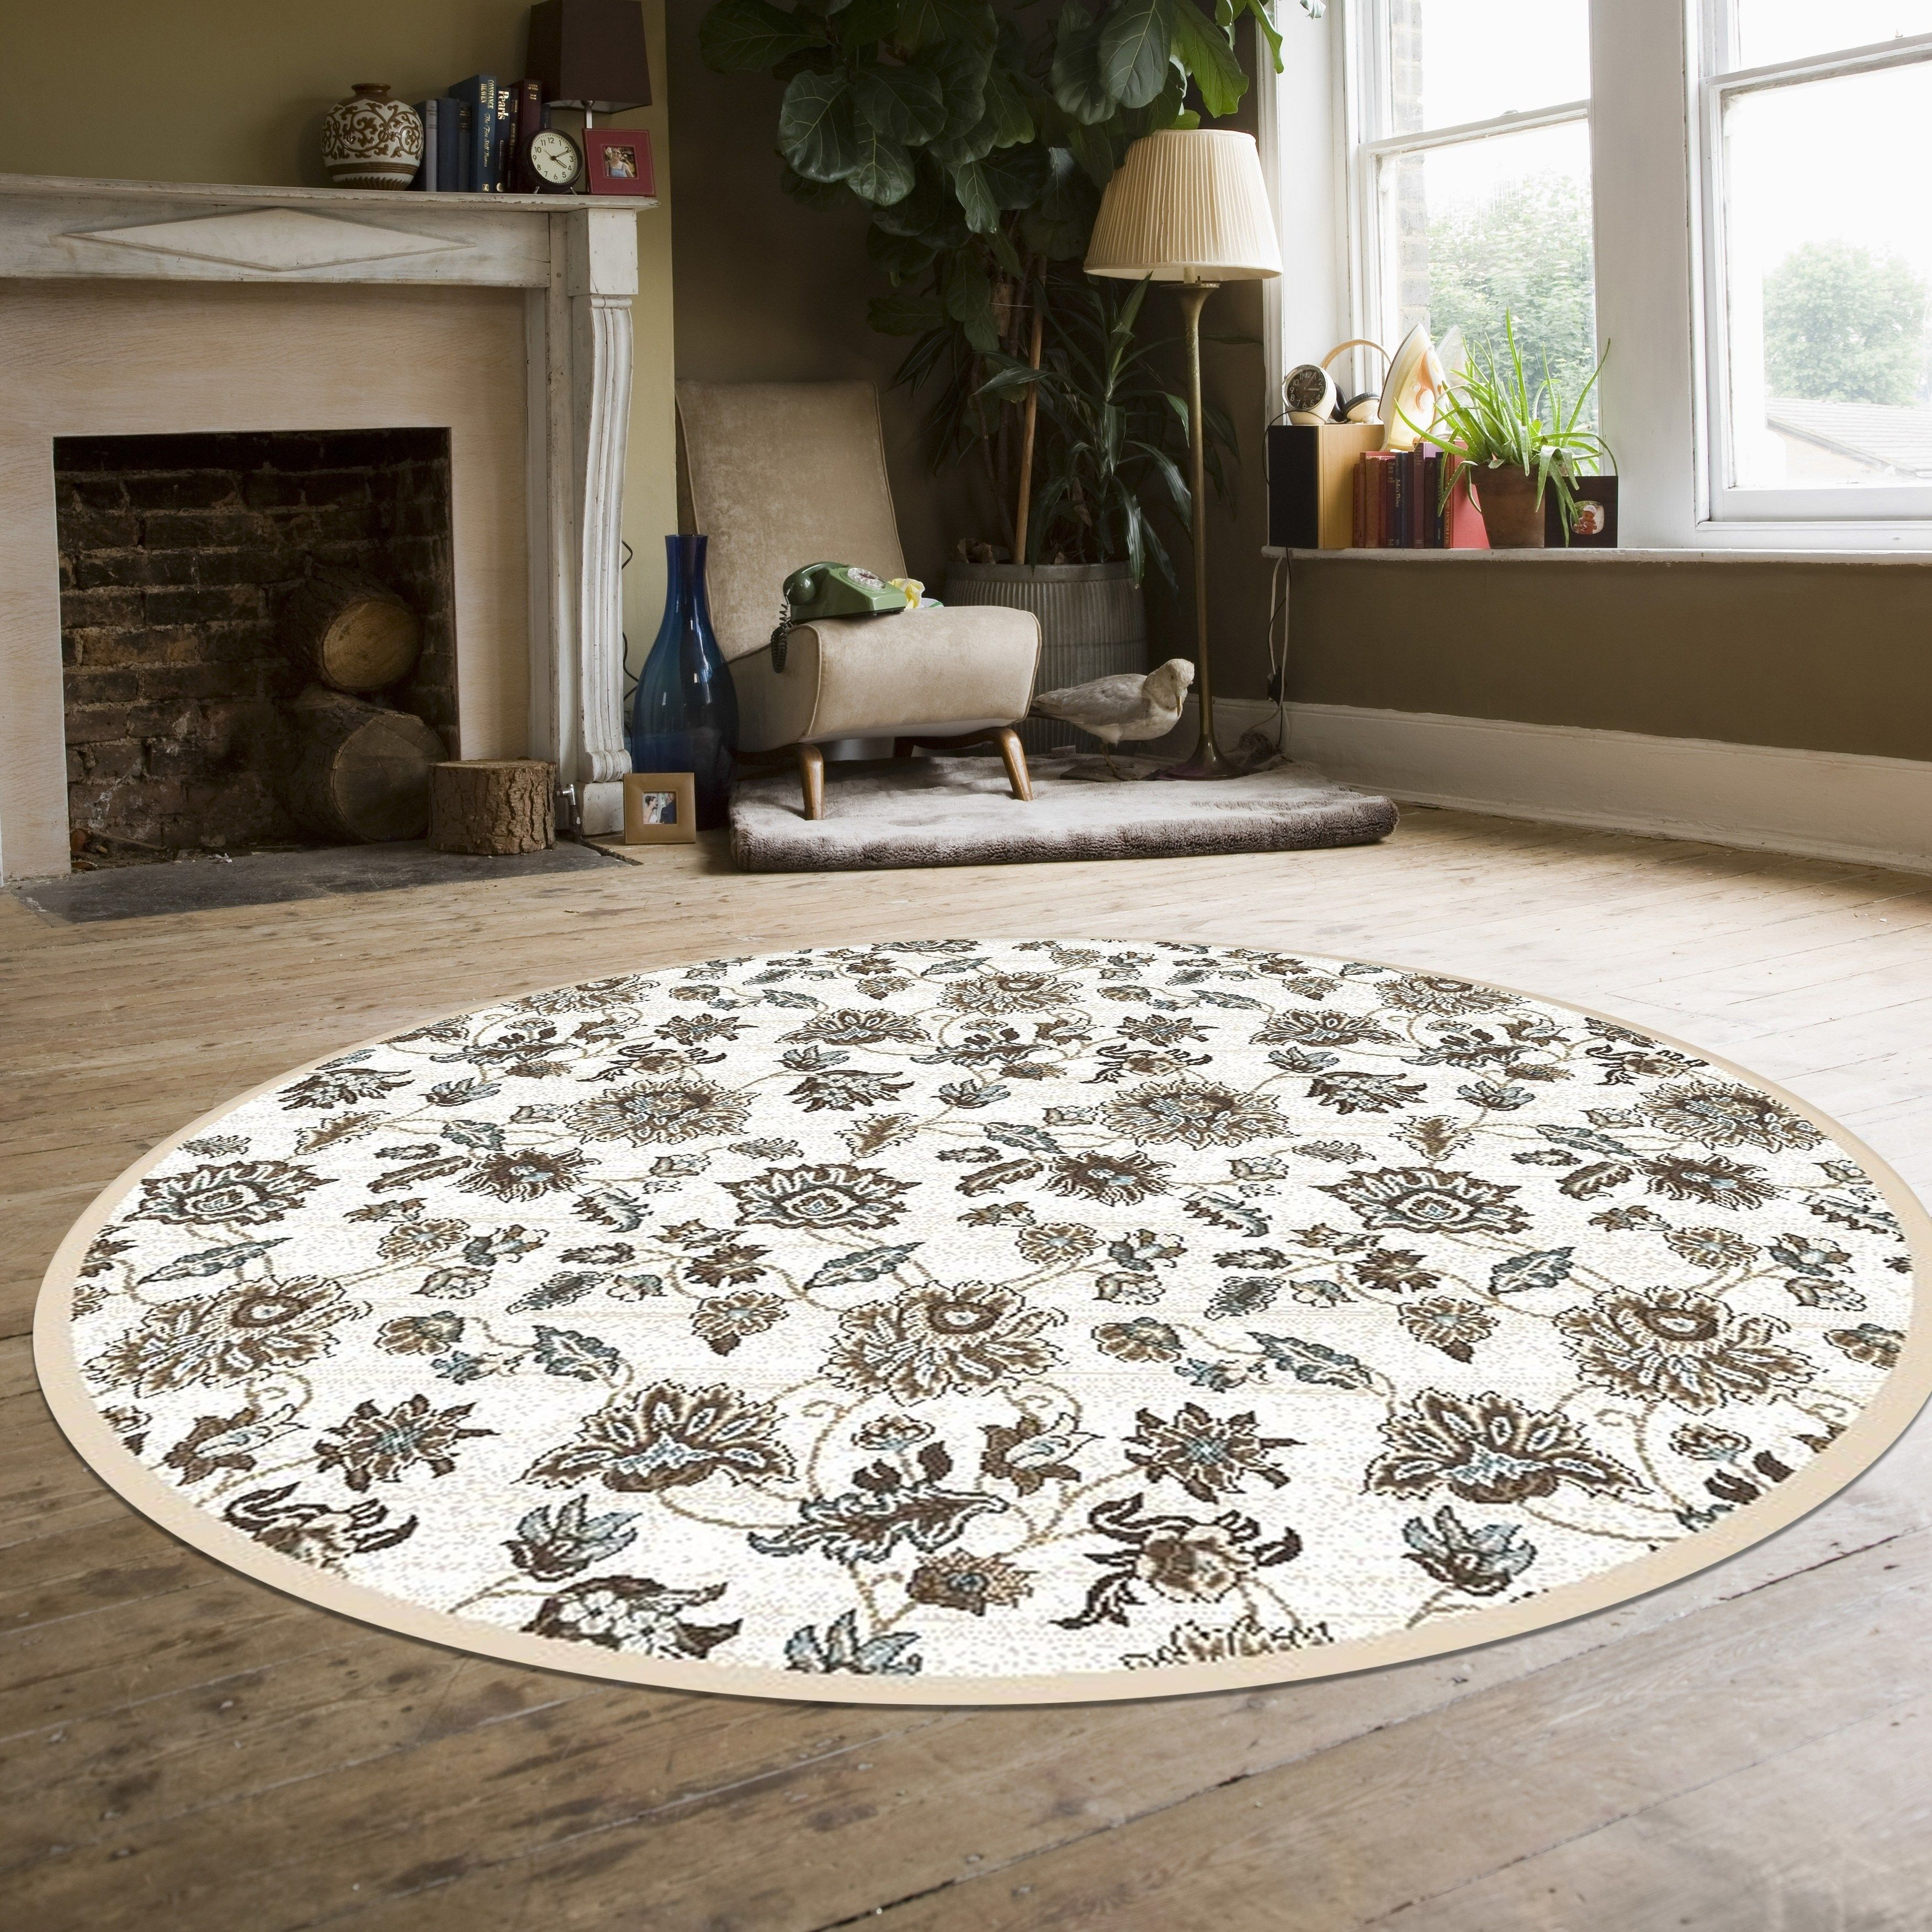 Plaza Floral Area Rug 5 3 Ivory Admire Home Living